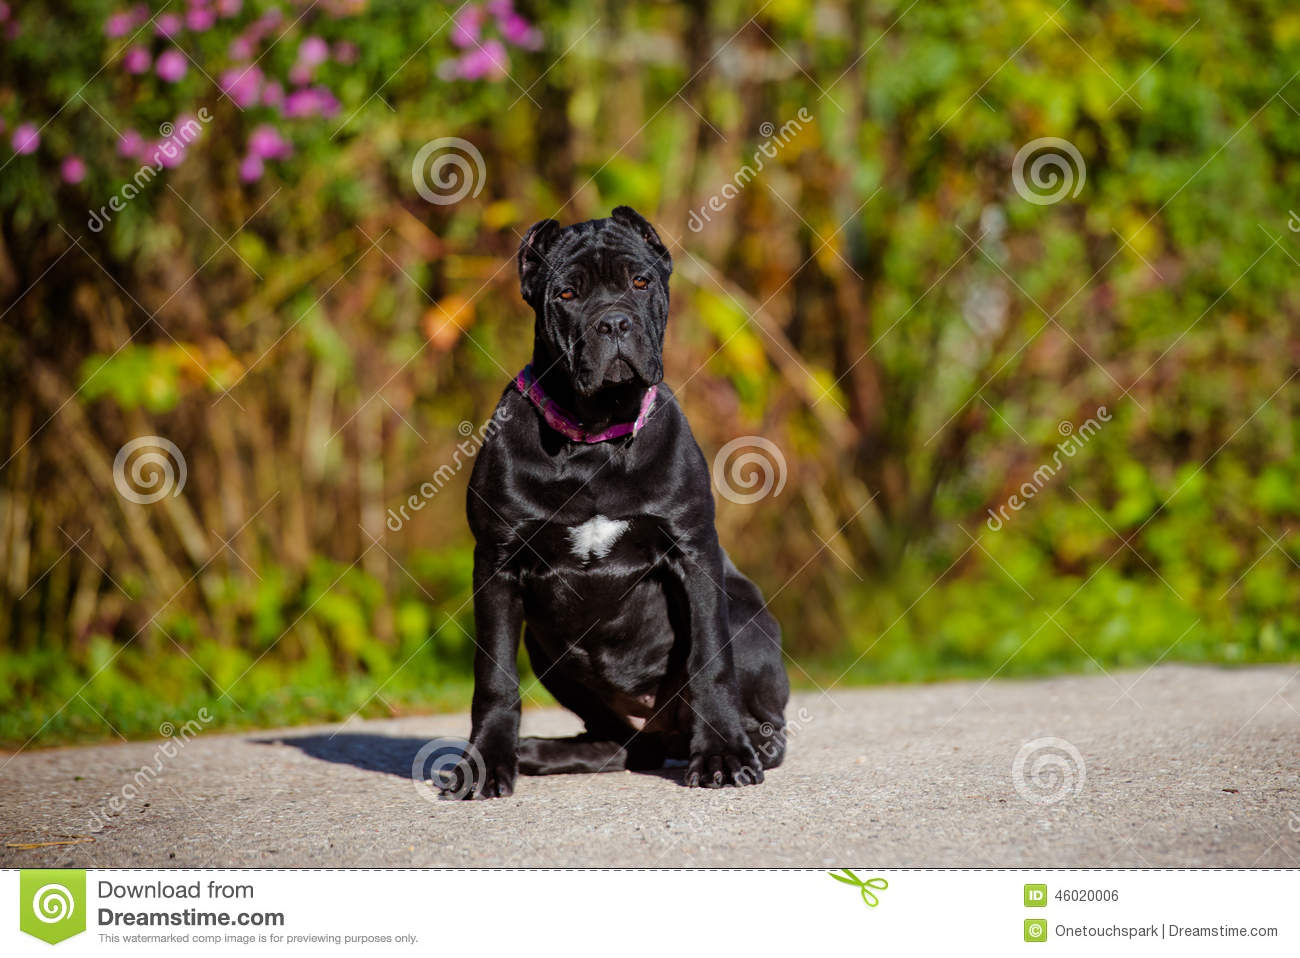 Black Cane Corso Puppy Outdoors Stock Photo Image Of Looking